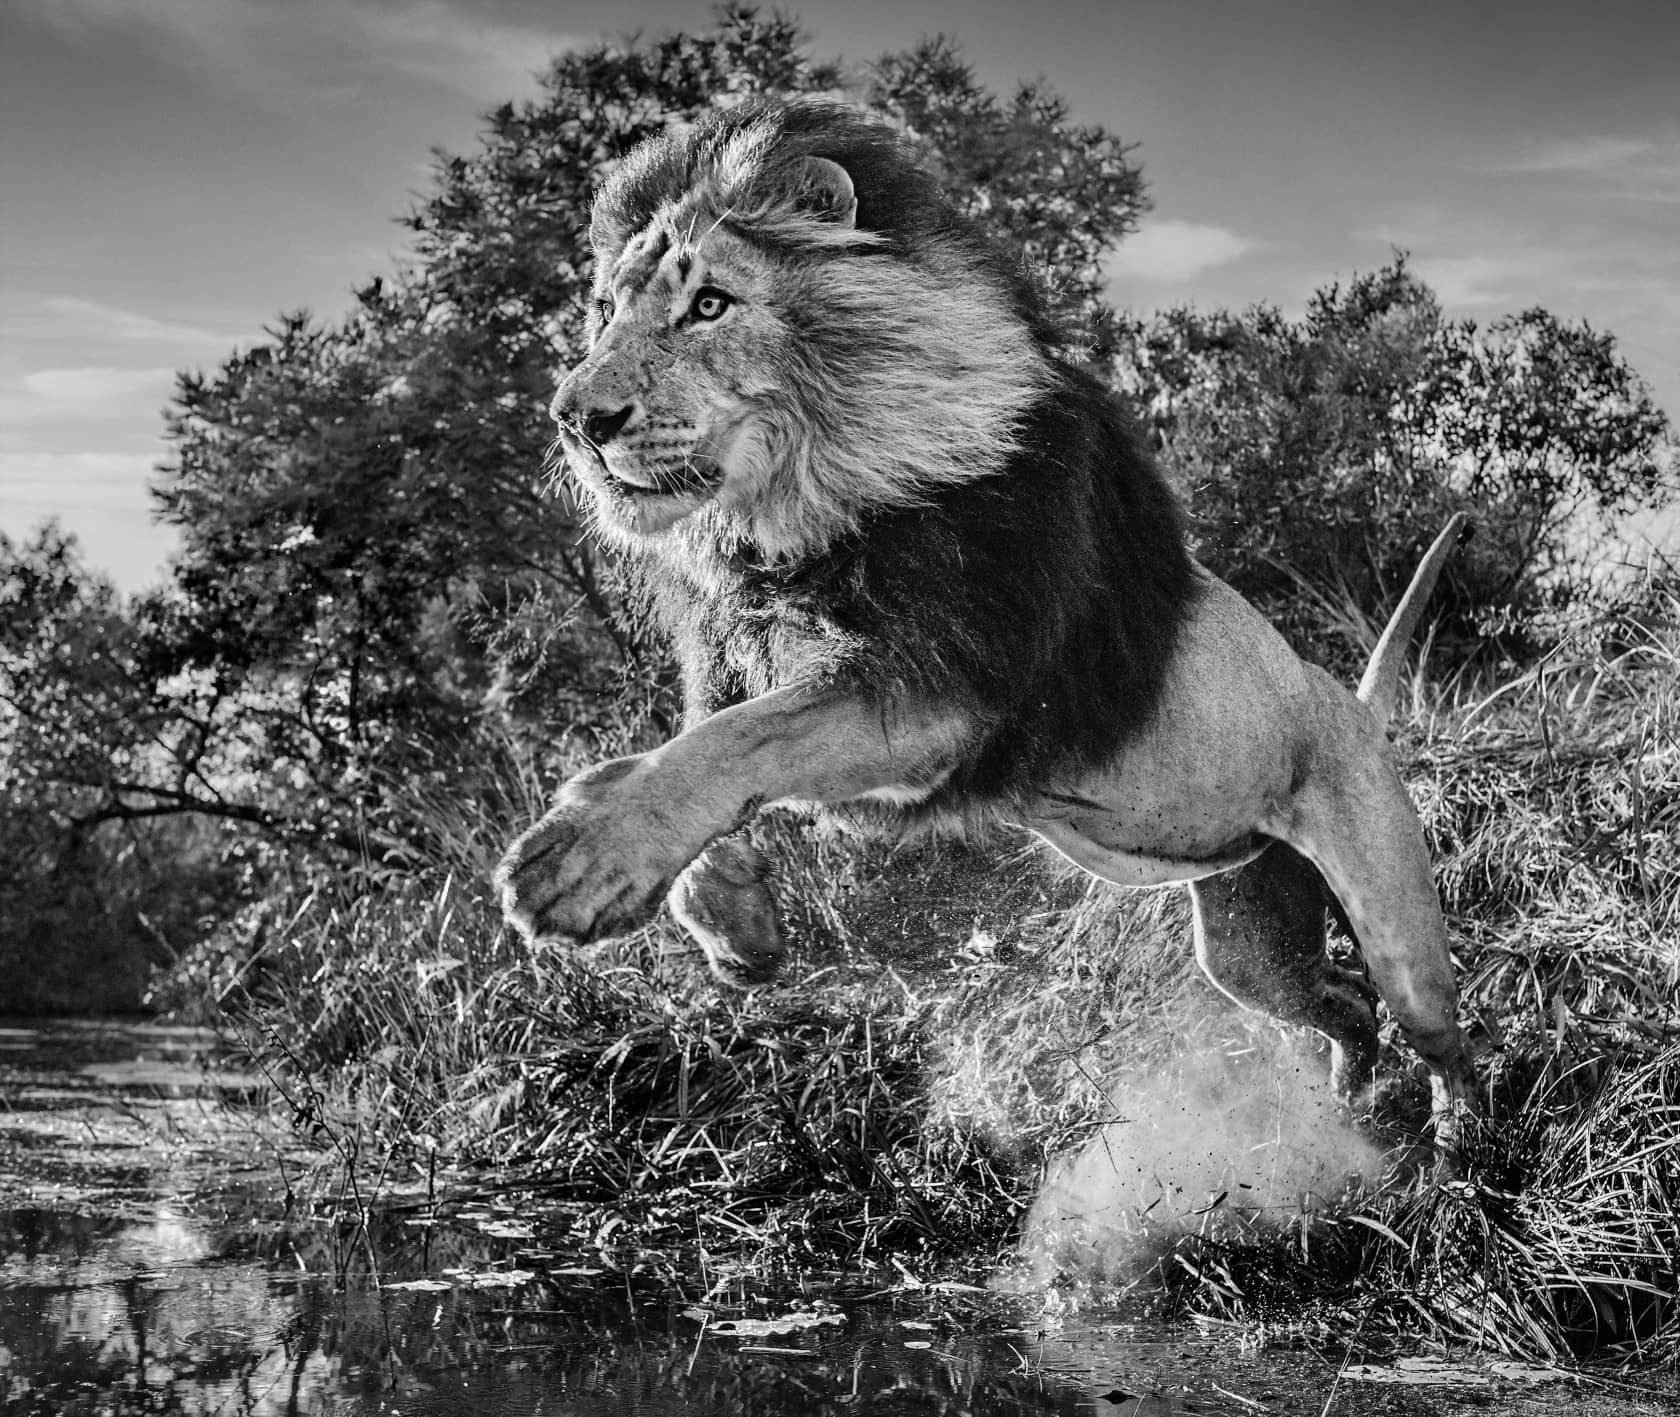 David Yarrow, First Down, 2020